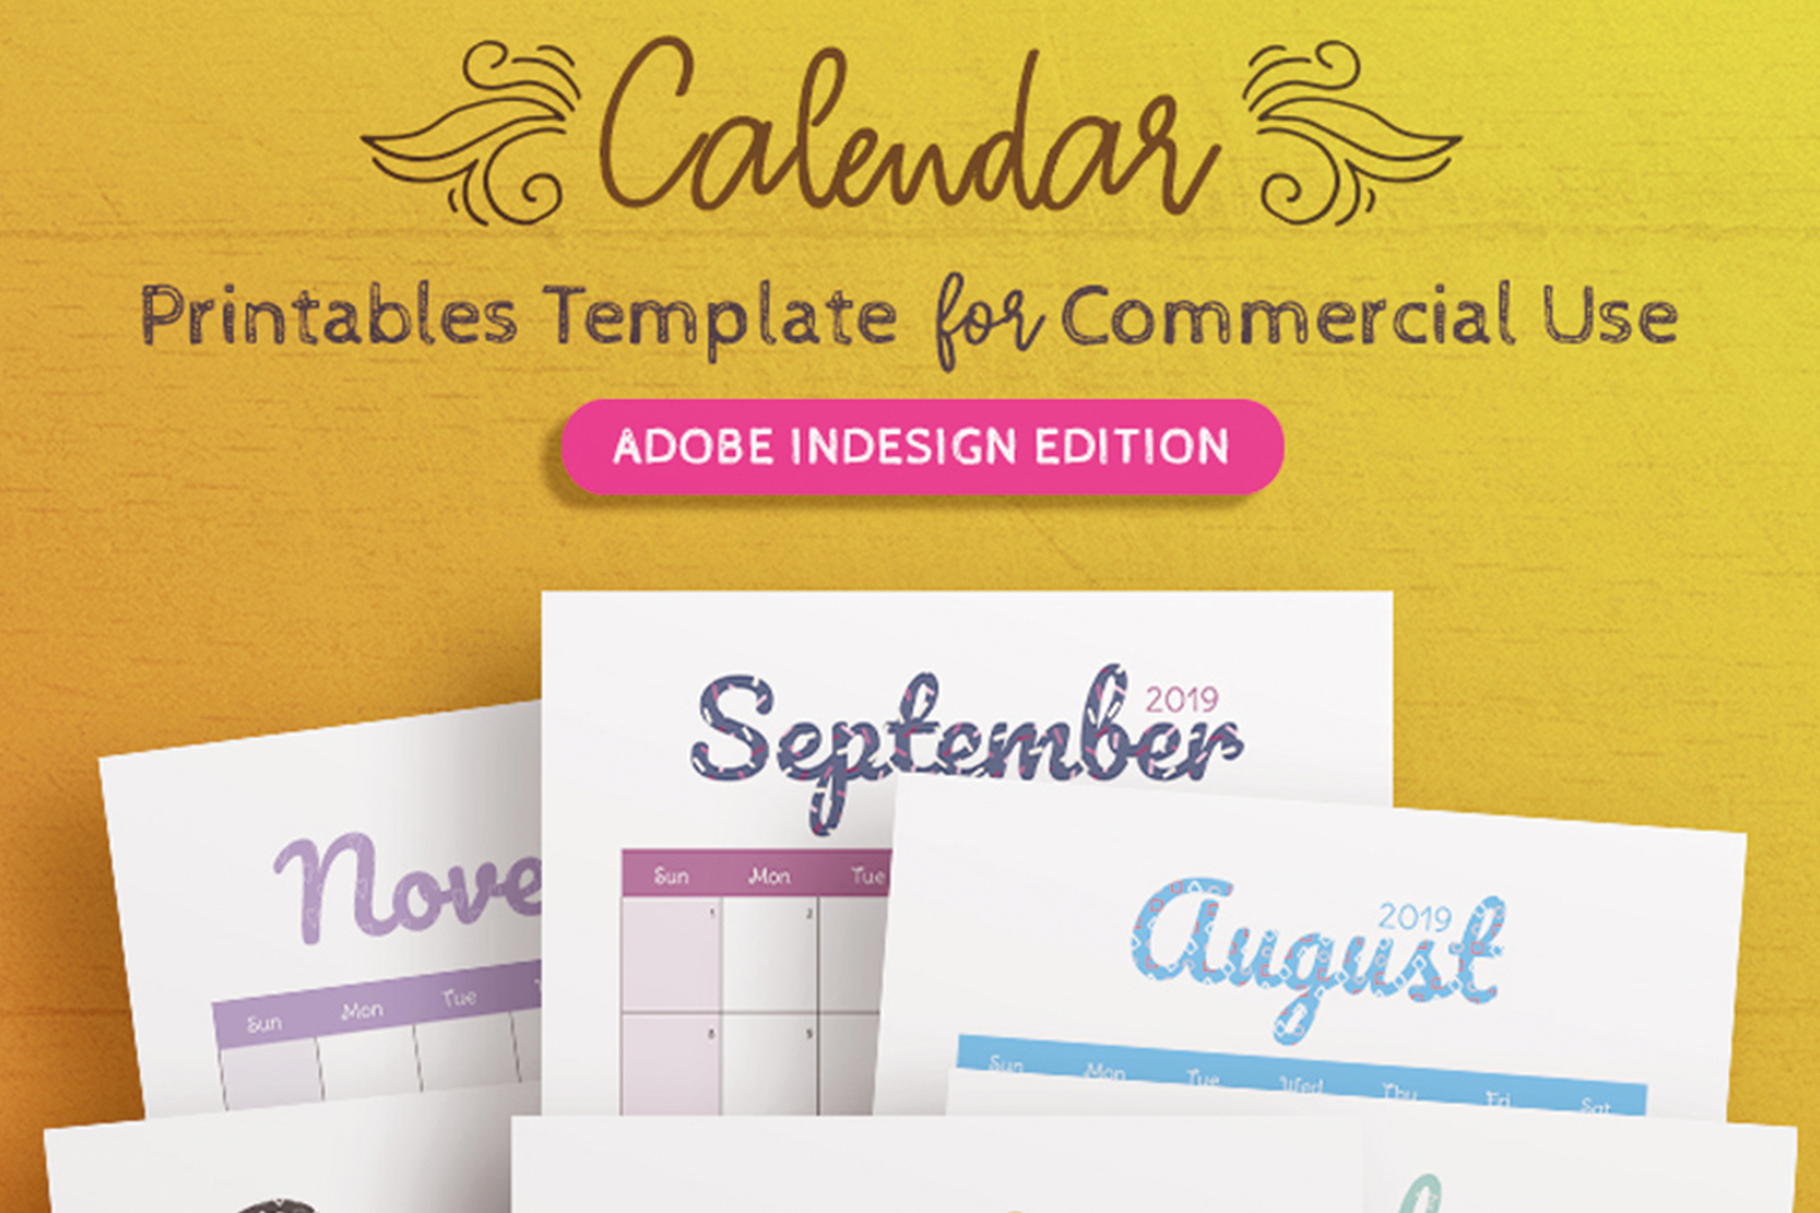 2019 Calendar InDesign Template for Commercial Use example image 1